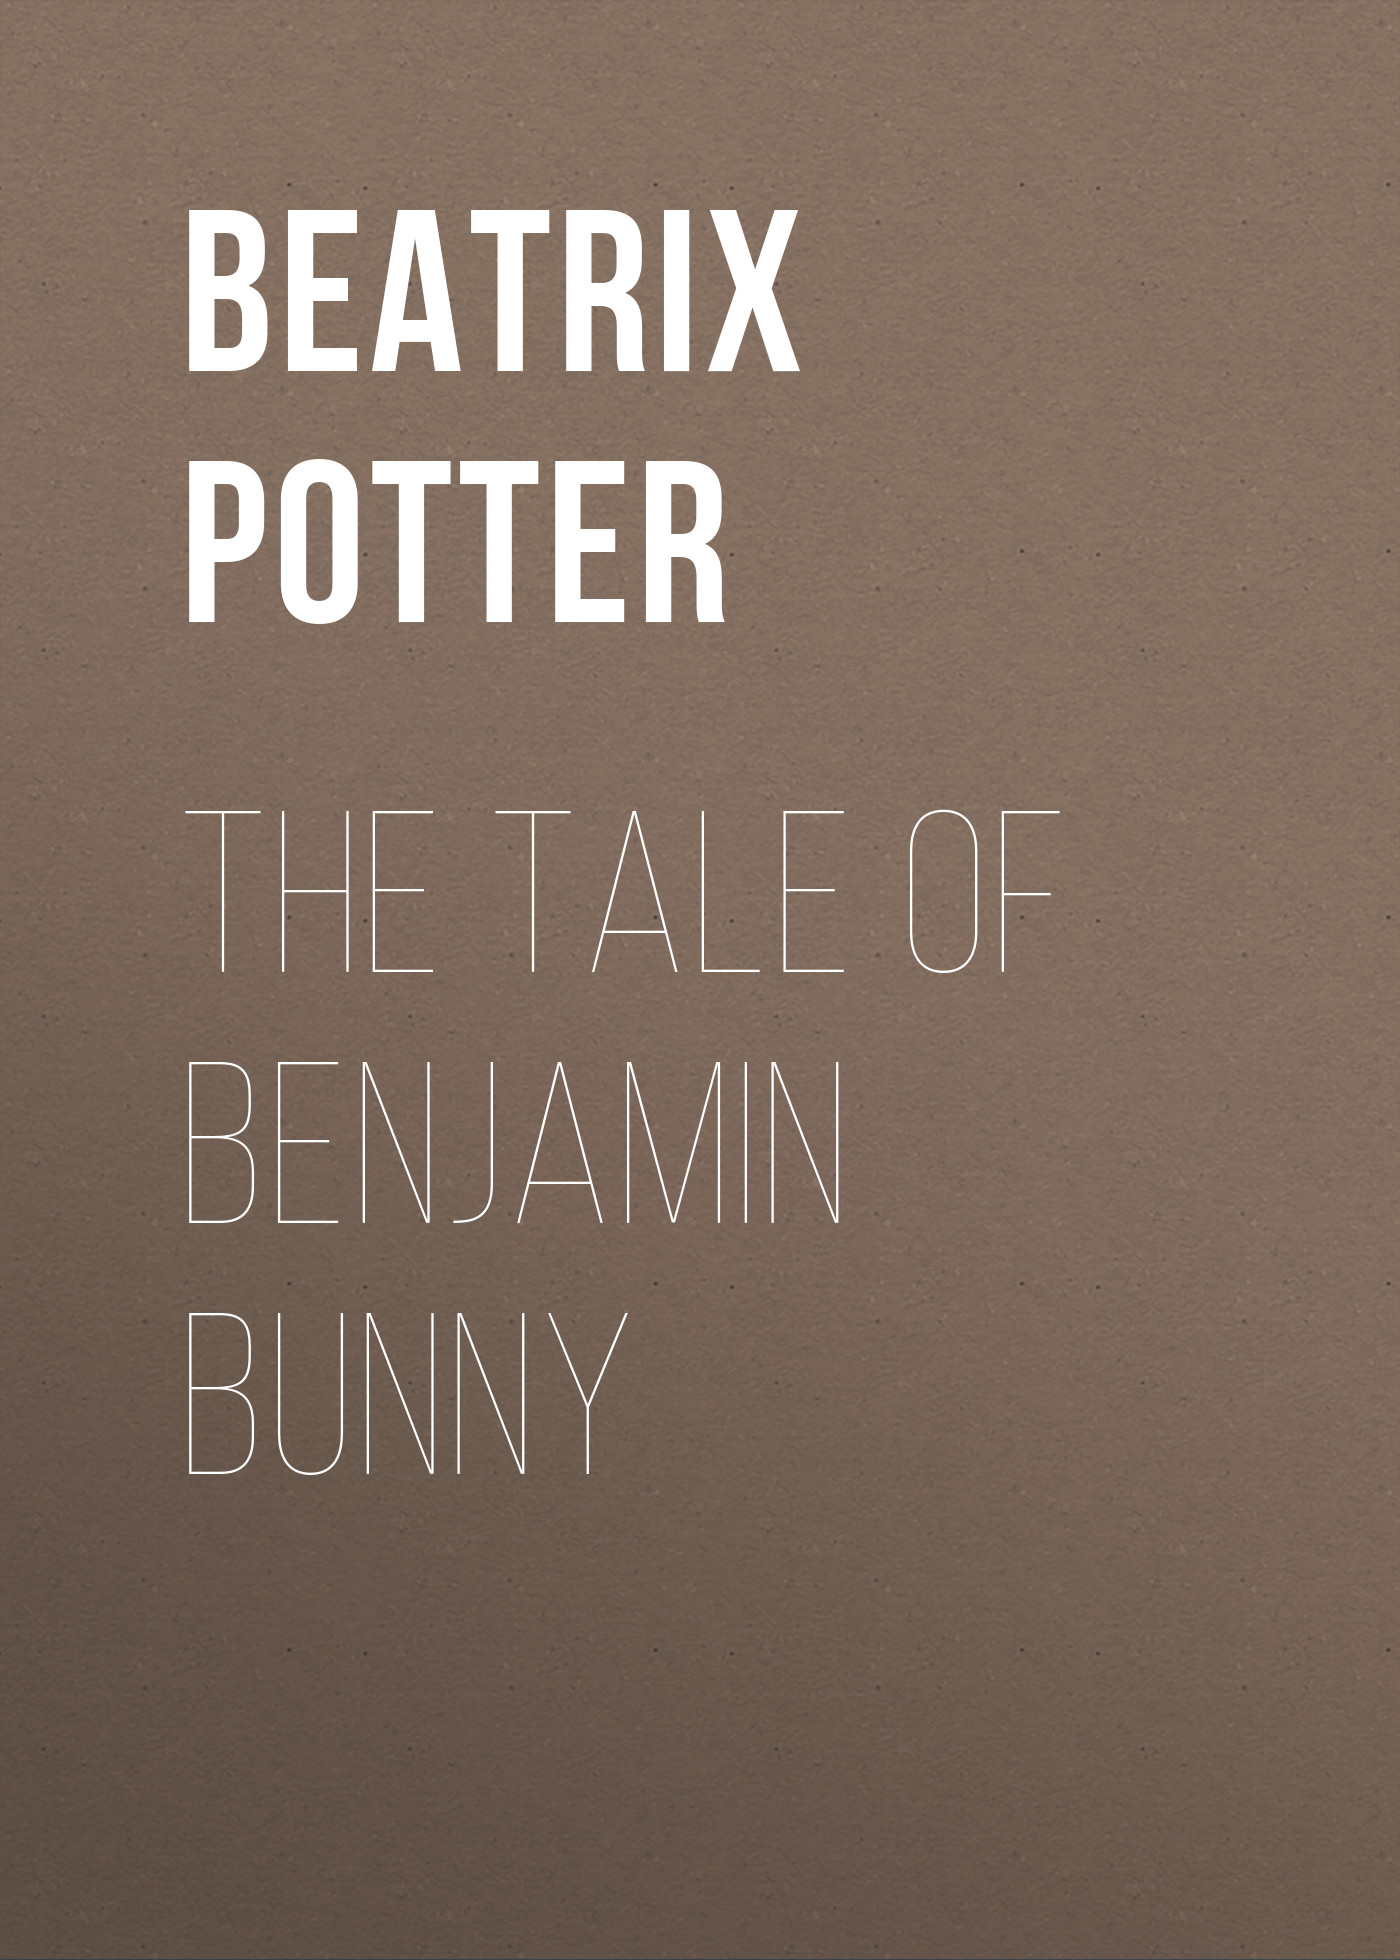 Беатрис Поттер The Tale of Benjamin Bunny беатрис поттер the tale of samuel whiskers or the roly poly pudding page 2